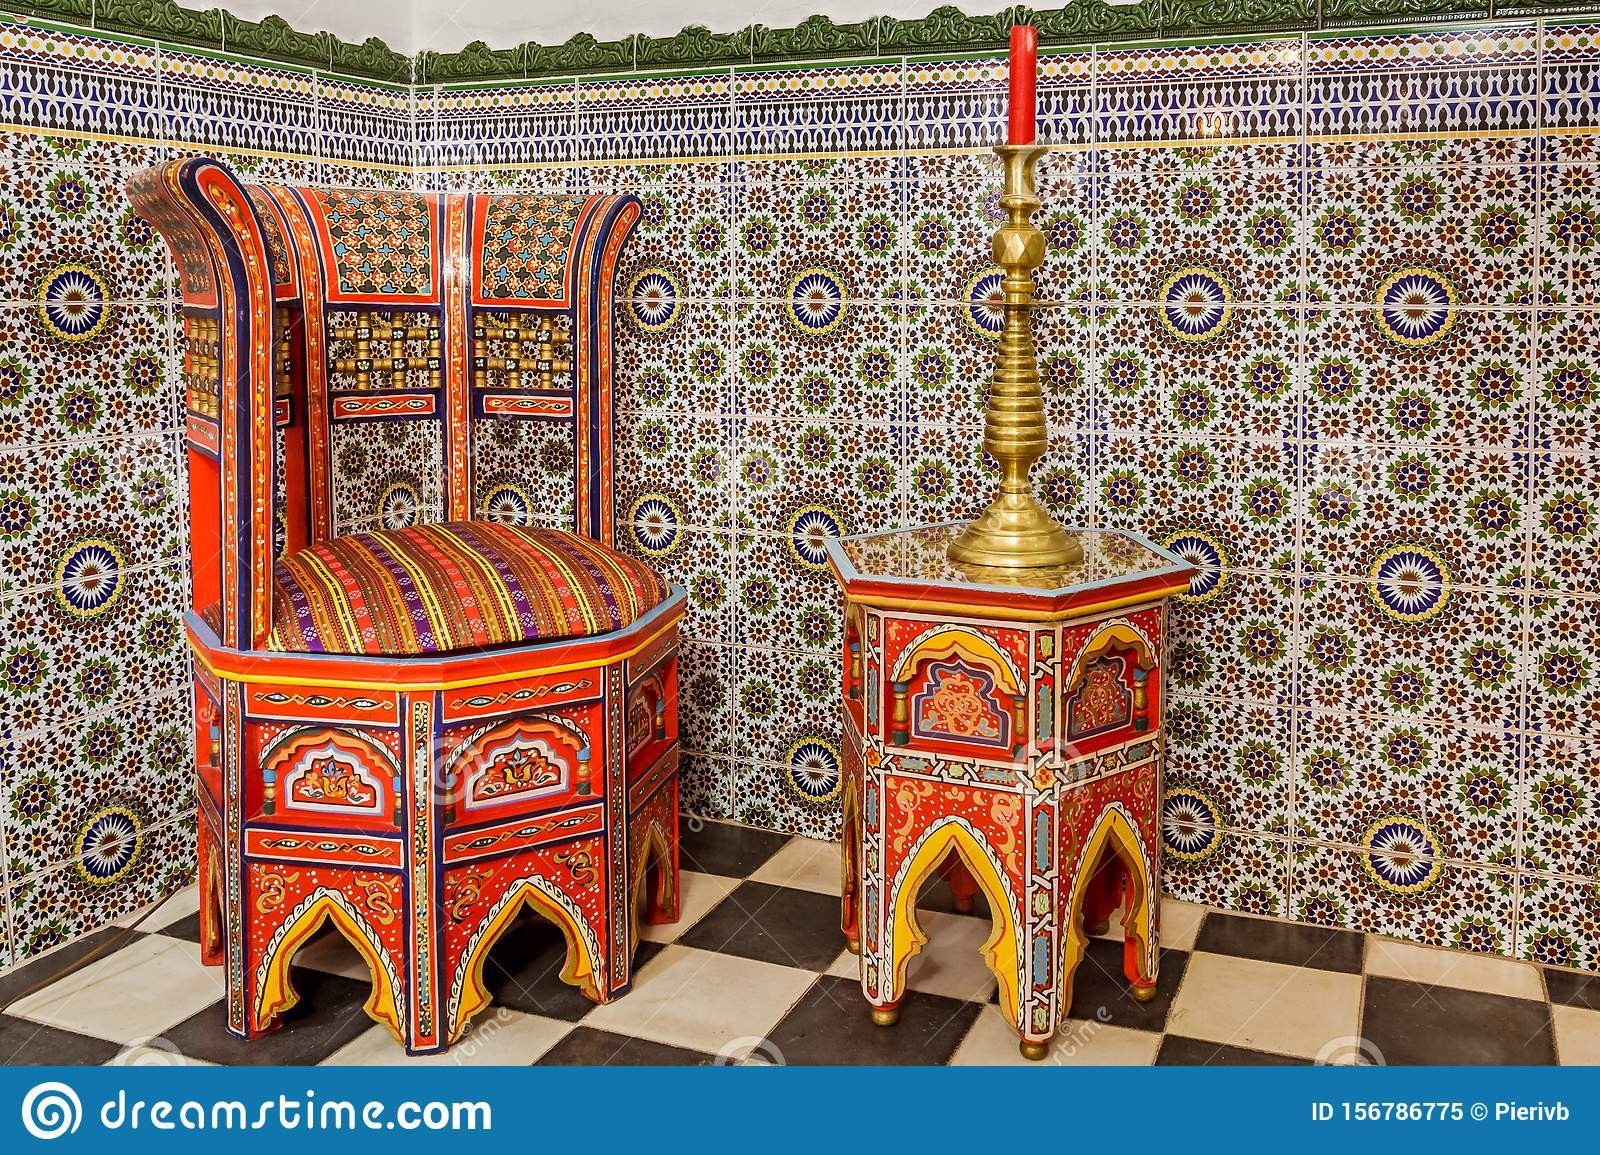 Moroccan furniture stock image. Image of carved, antique - 10